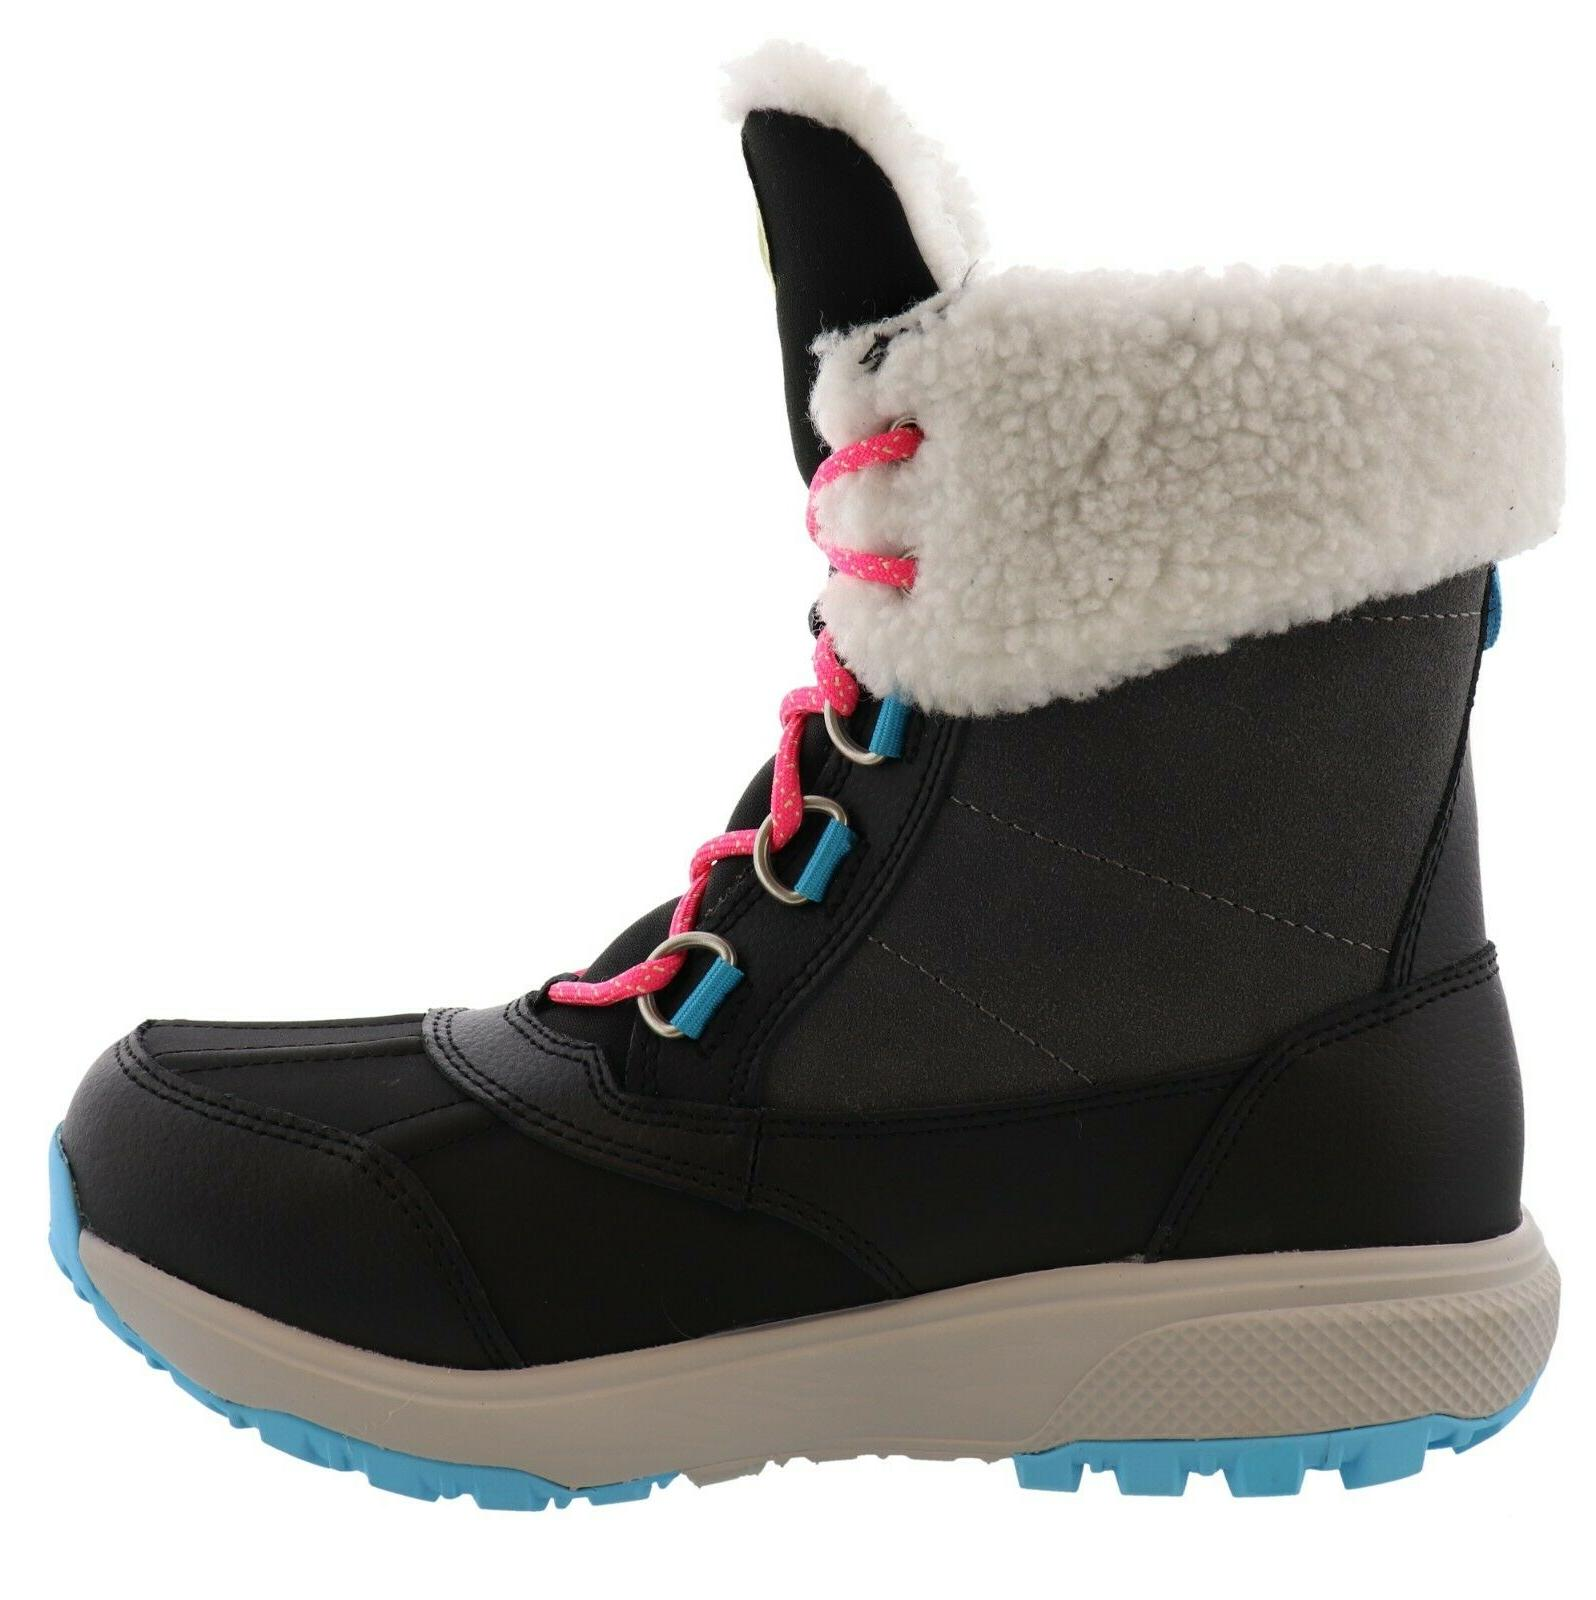 SKECHERS ON THE GO OUTDOOR CAPPED